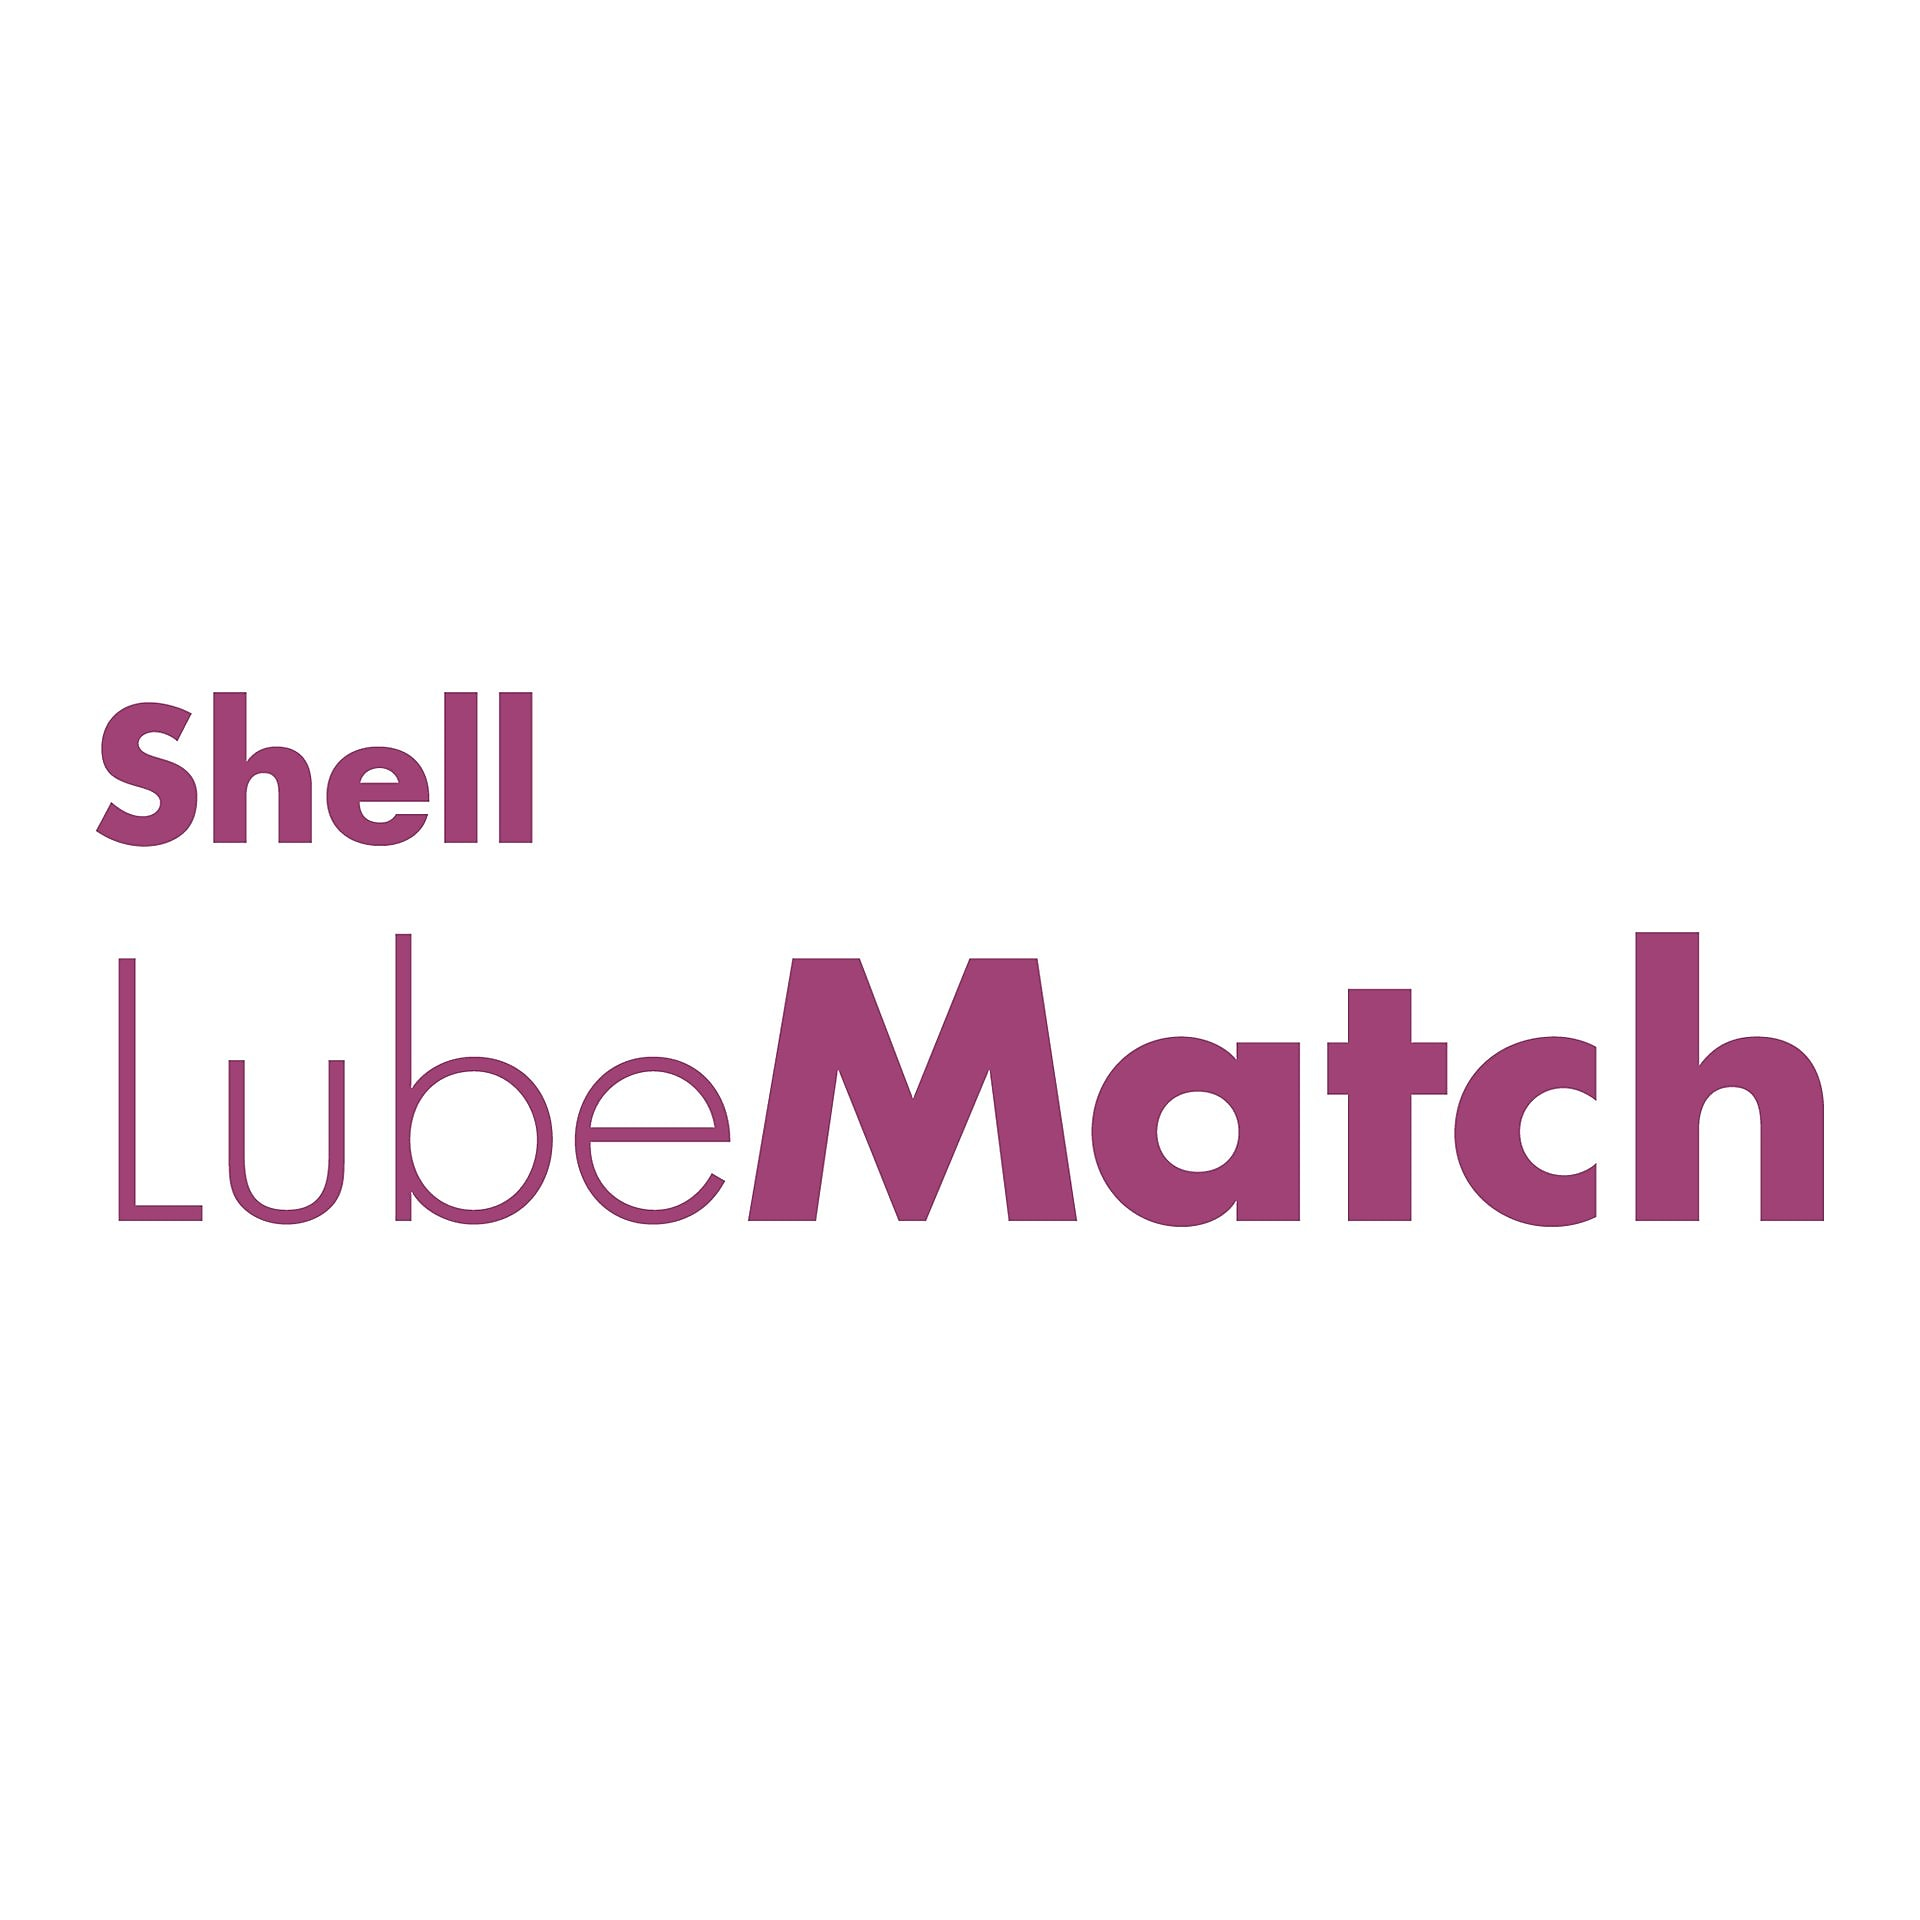 Logomarca na cor verde do Shell LubeMatch